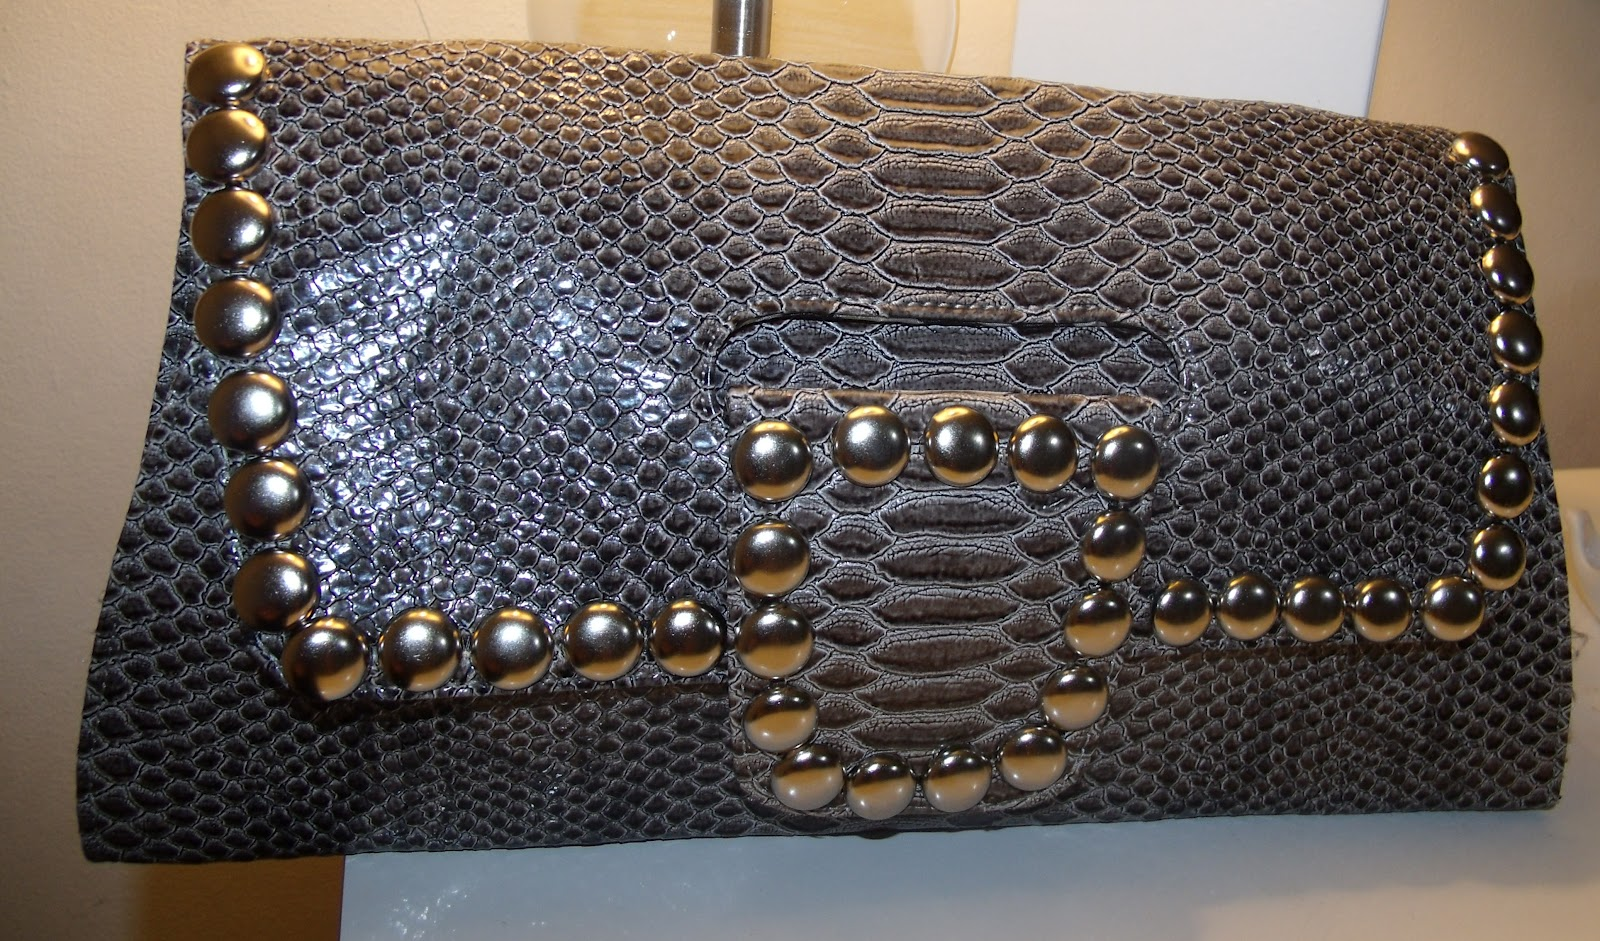 diy} snakeskin studded convertible clutch | curvatude™ - a chicago